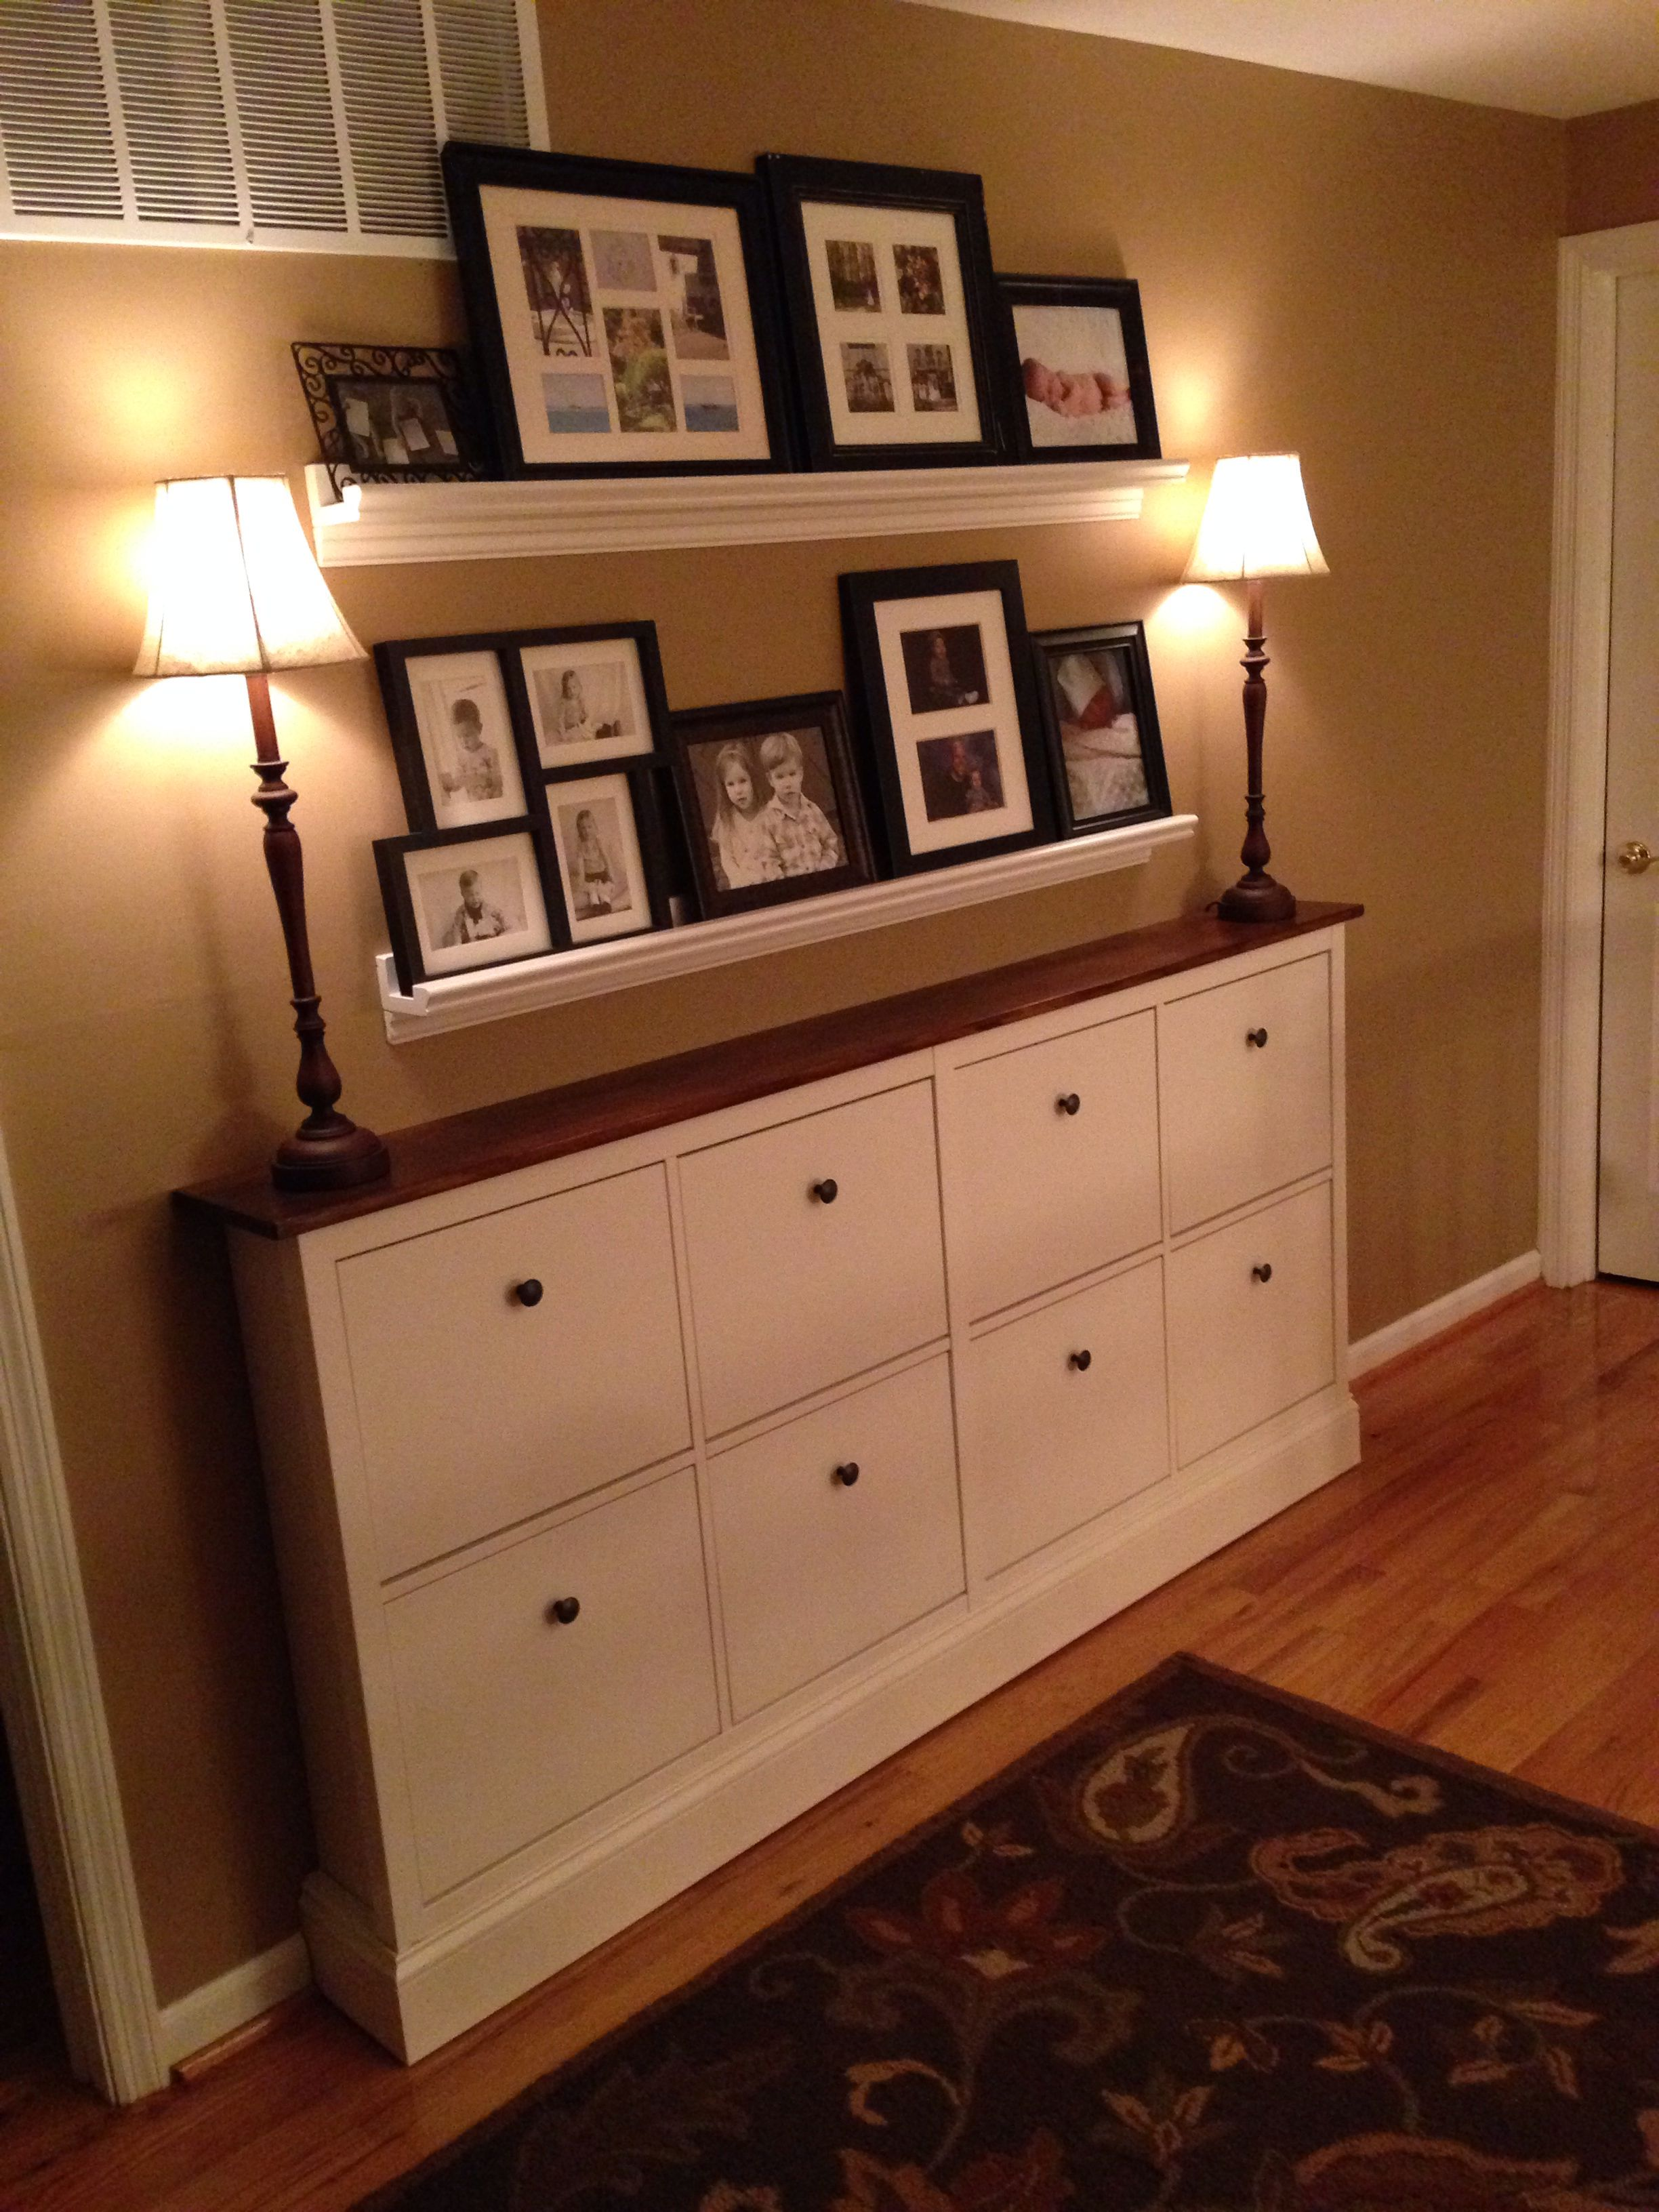 Ikea hack ikea hacked shoe cabinets built in shoe cabinets ikea pinterest ikea hack - Mueble tv hemnes ...